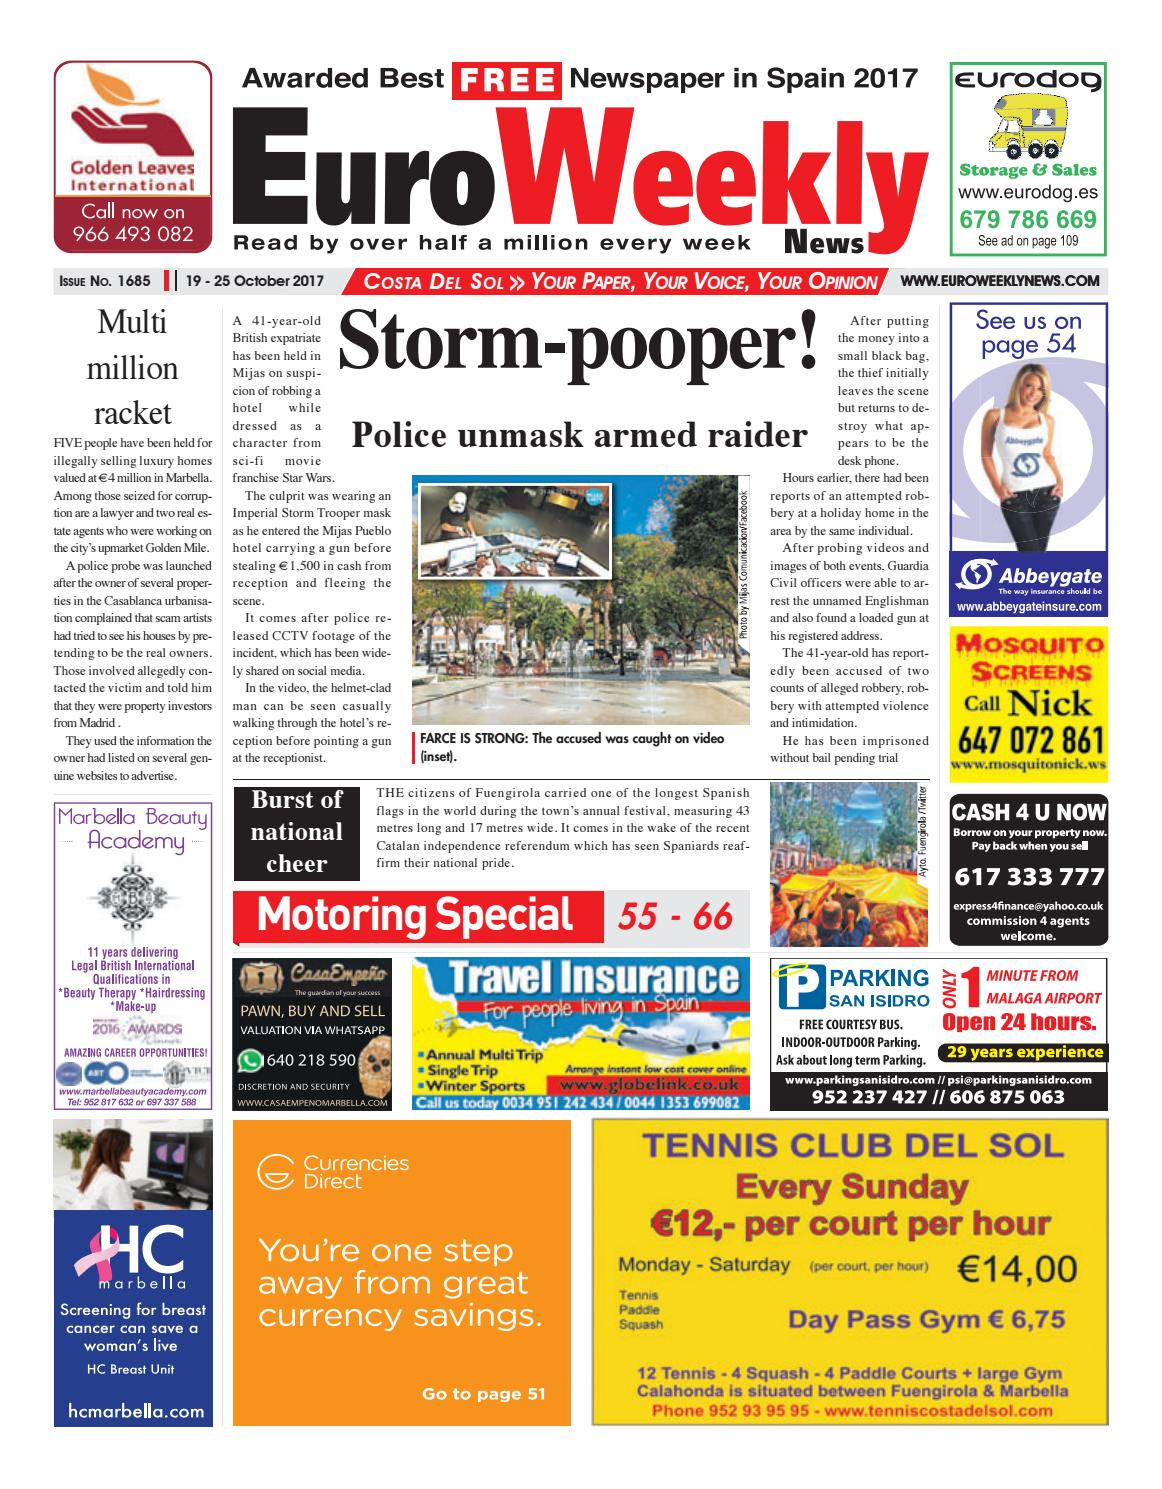 Euro weekly news costa del sol 19 25 october 2017 issue 1685 by euro weekly news costa del sol 19 25 october 2017 issue 1685 by euro weekly news media sa issuu fandeluxe Images